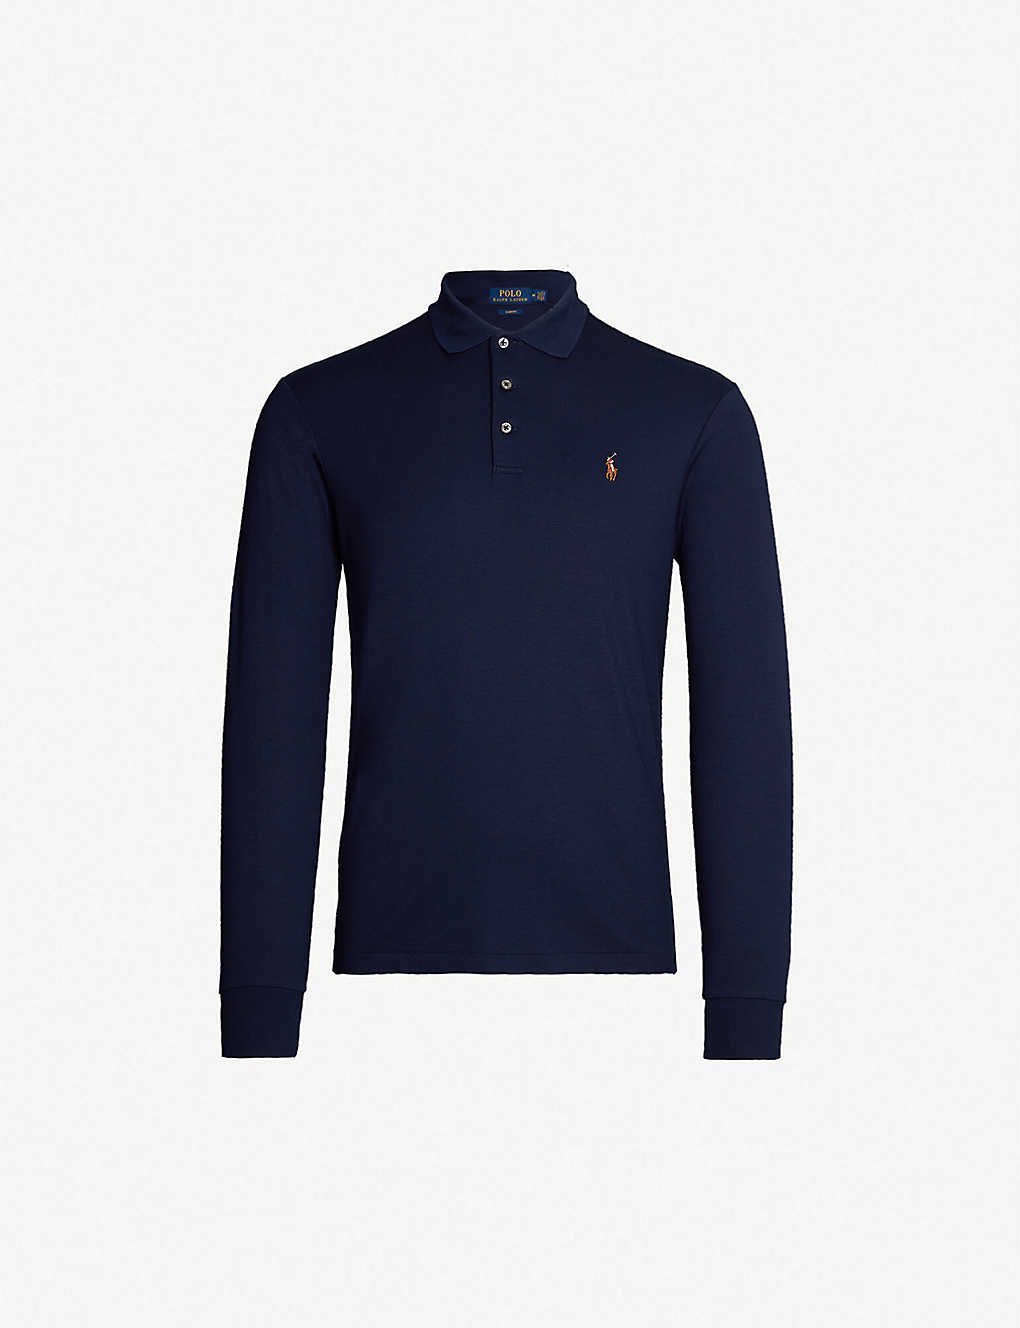 586d2b107 POLO RALPH LAUREN - Logo-embroidered long-sleeved cotton-jersey polo ...